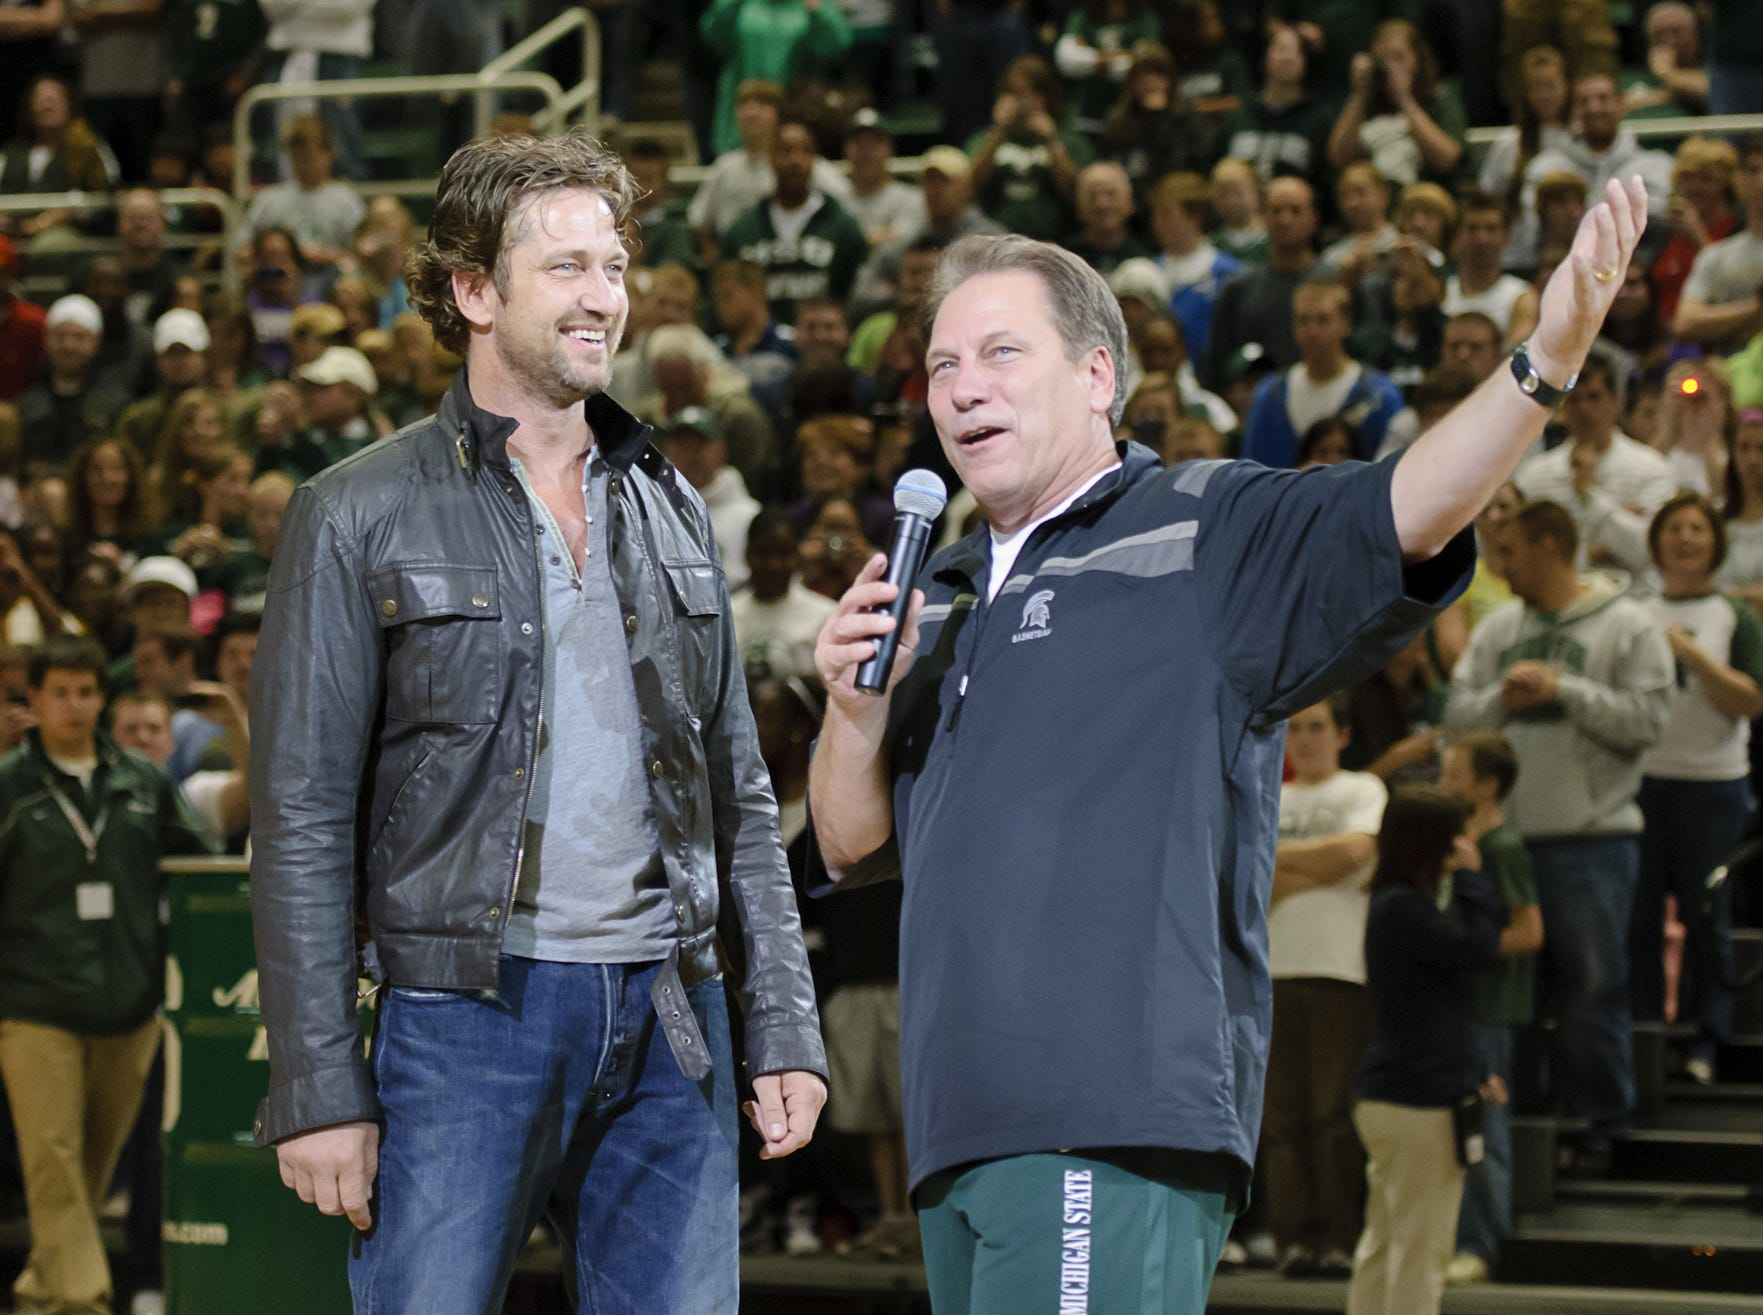 """MSU coach Tom Izzo (right) introduces actor and star of the film """"300"""" Gerard Butler to the crowd during Midnight Madness Friday October 15, 2010 in East Lansing."""